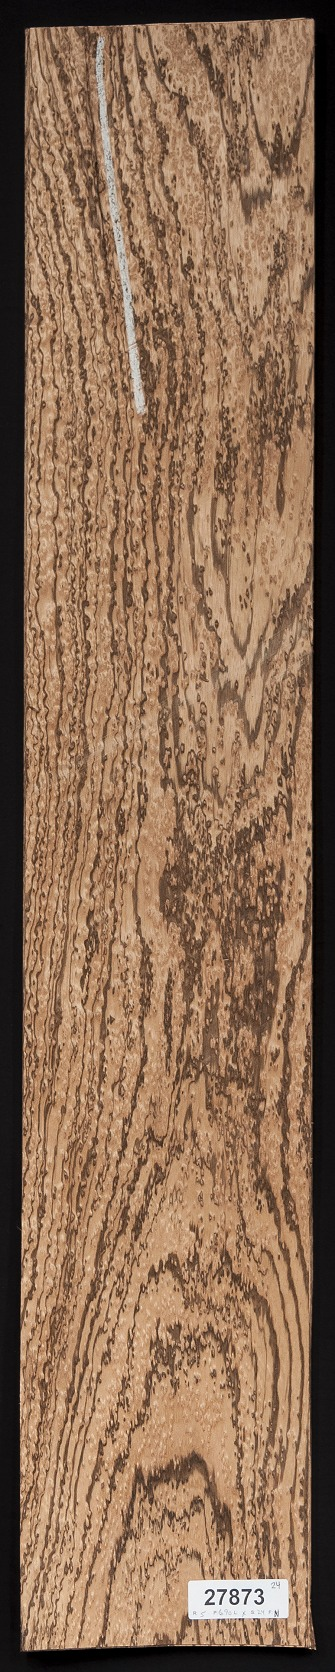 AAA Birds Eye Zebrawood Veneer Sheet